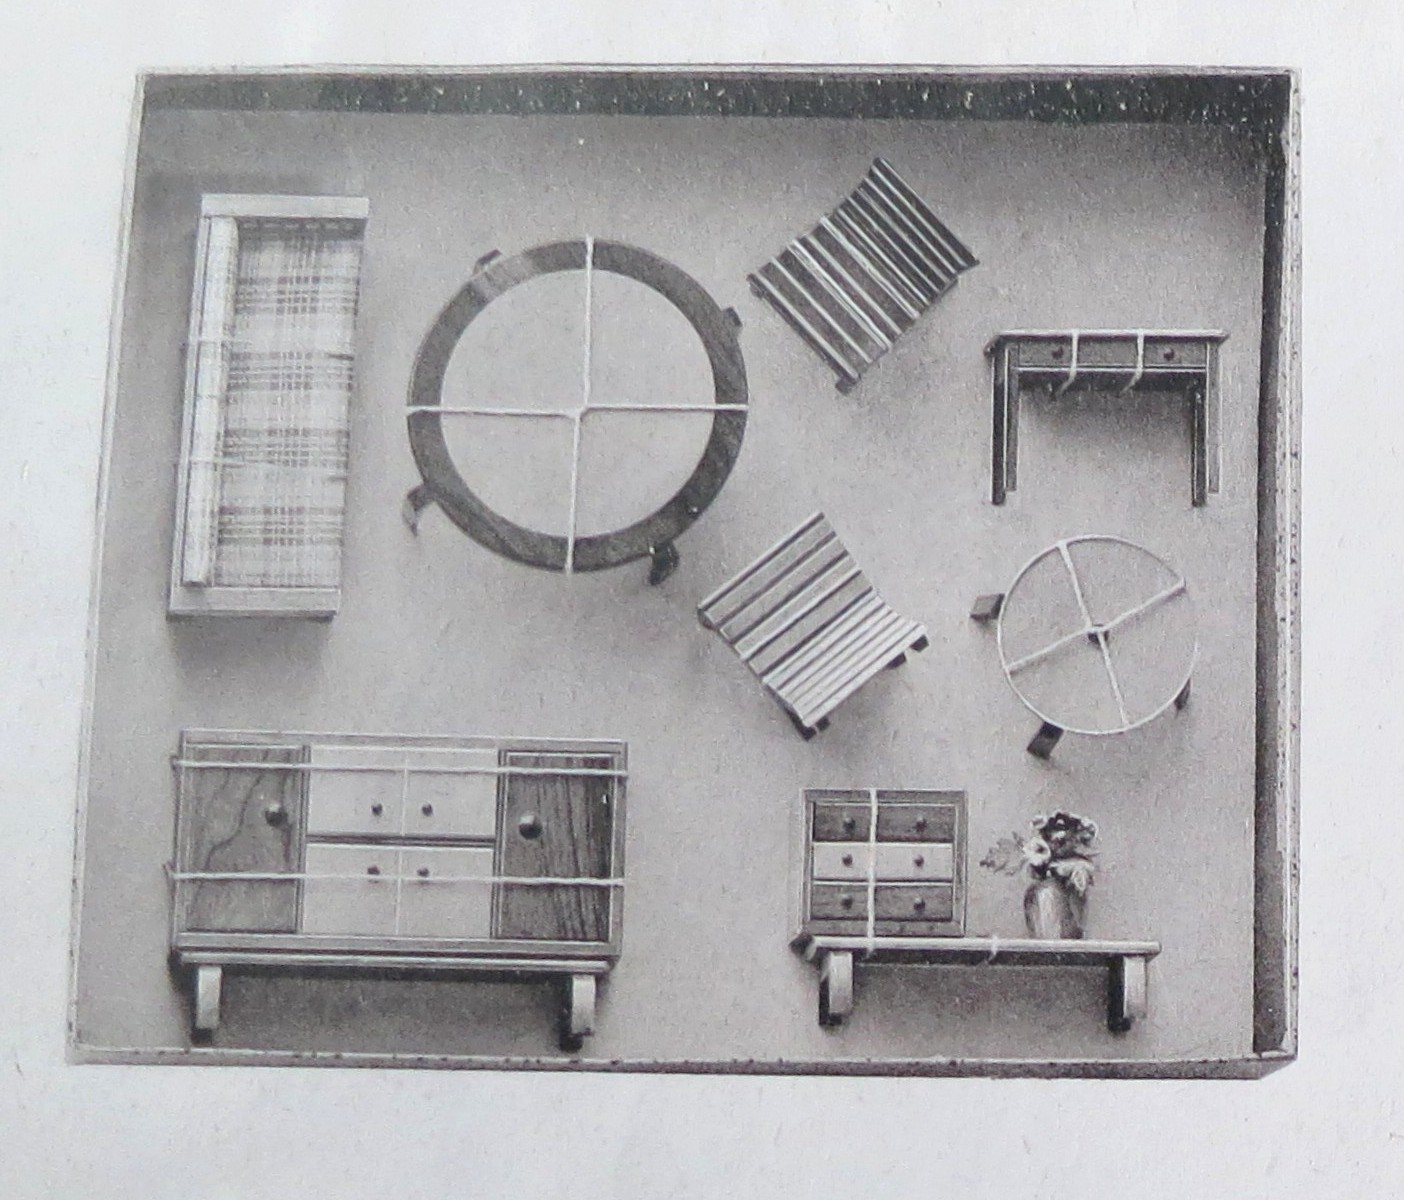 Greyscale catalogue photo of living room set by Rülke, ca 1950